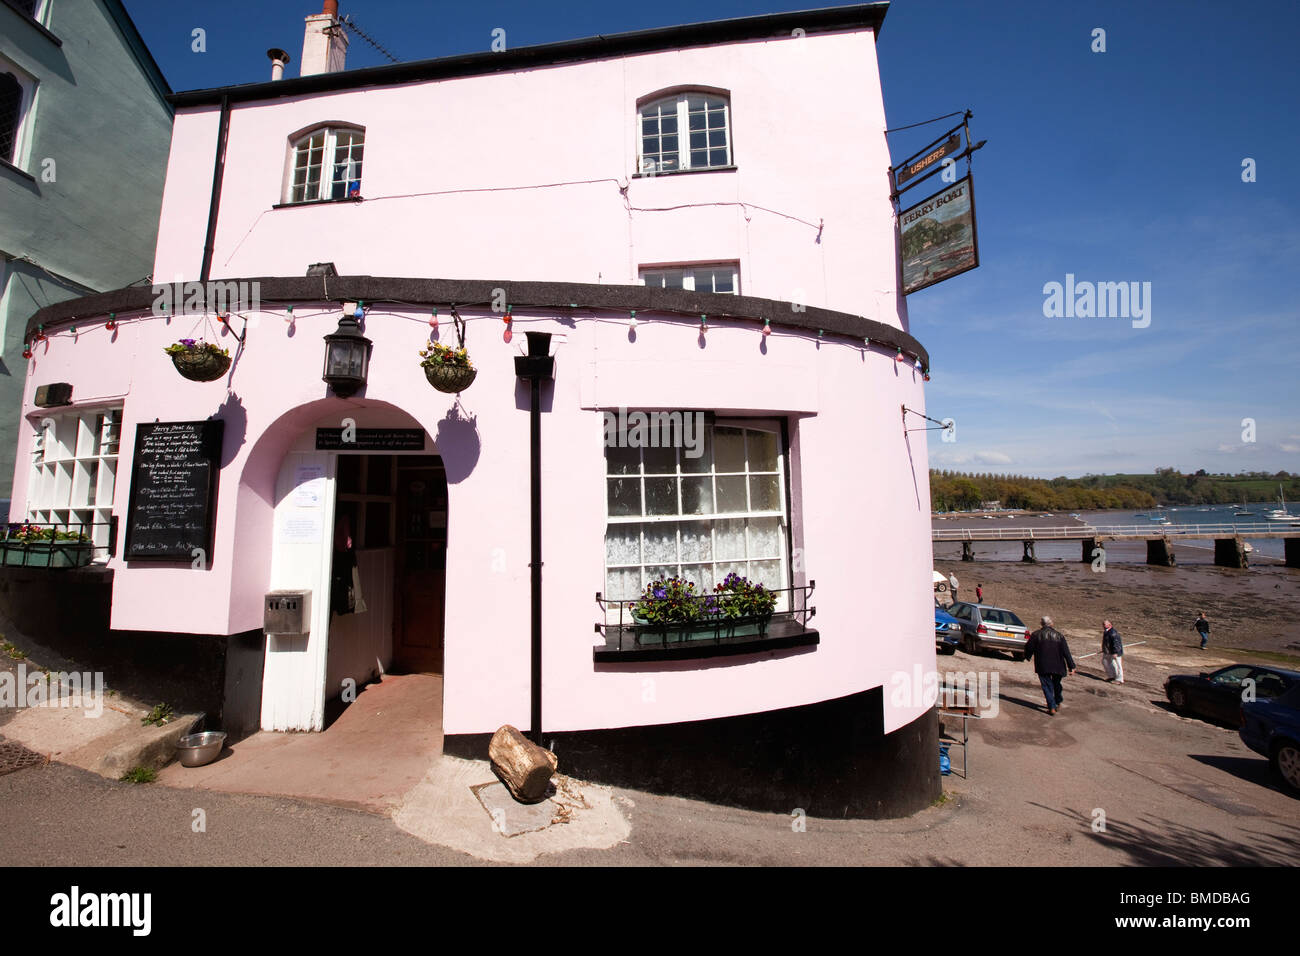 UK, England, Devon, Dittisham, Ferry Boat Inn overlooking River Dart - Stock Image